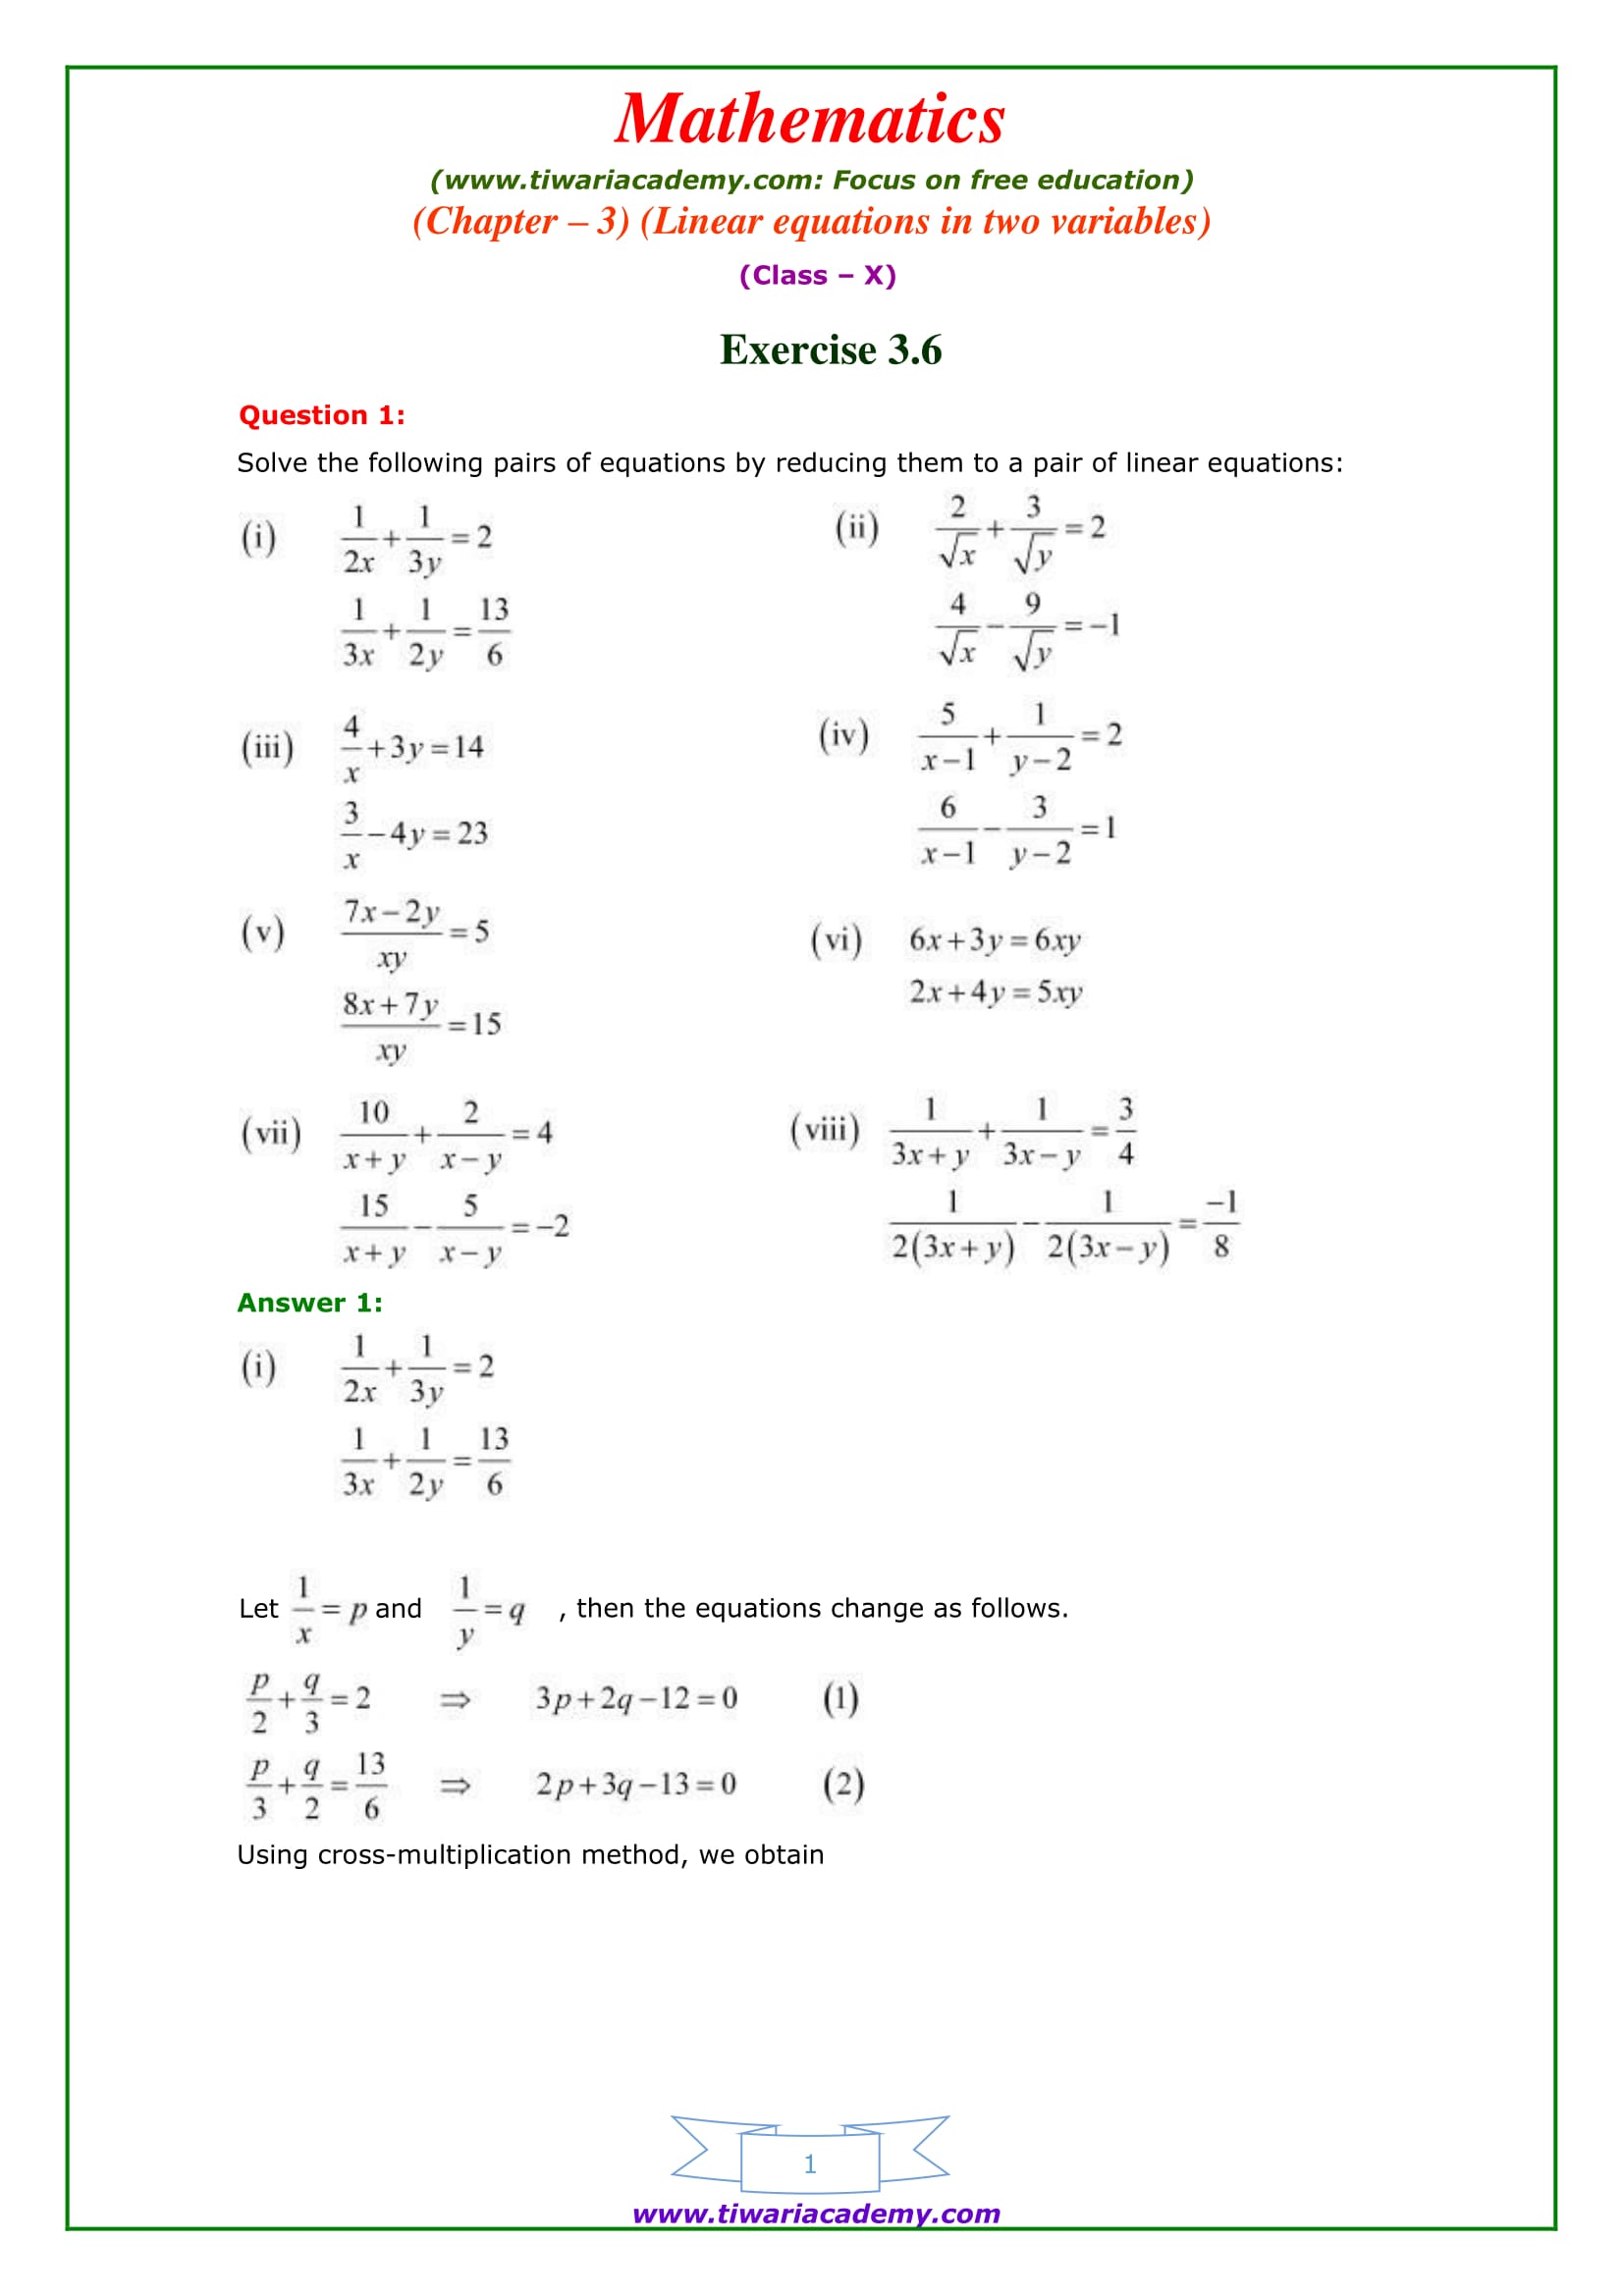 Ncert solutions for class 10 maths chapter 3 exercise 36 online ncert solutions for class 10 maths chapter 3 exercise 36 malvernweather Gallery